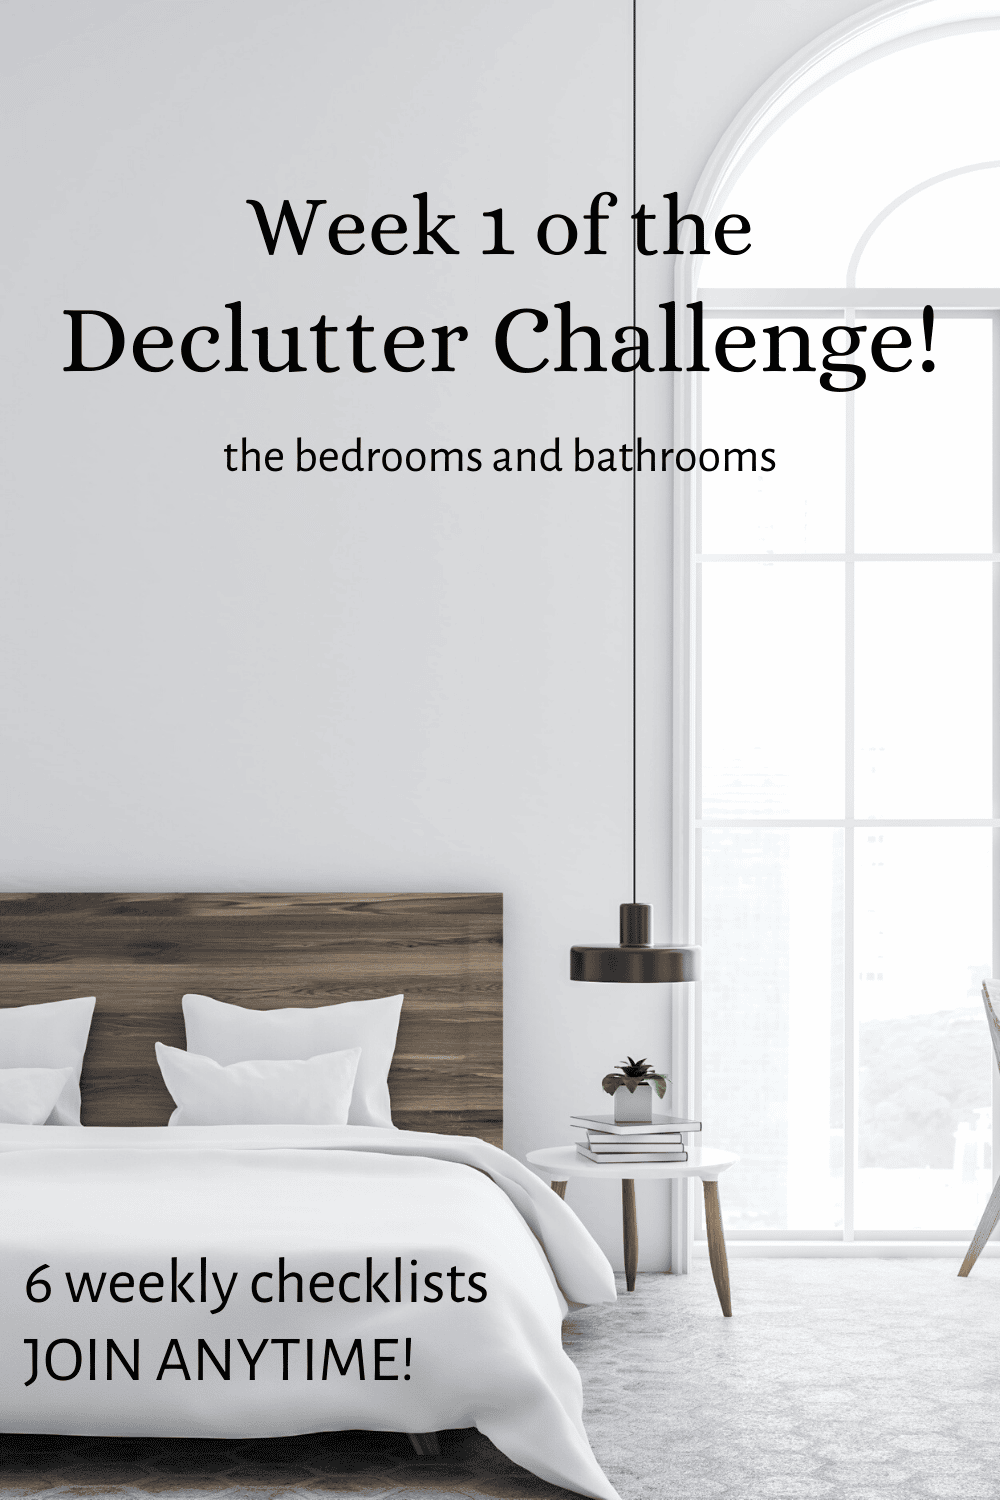 pin showing decluttered bedroom for Week 1 of the Declutter Challenge for bedrooms and bathrooms.